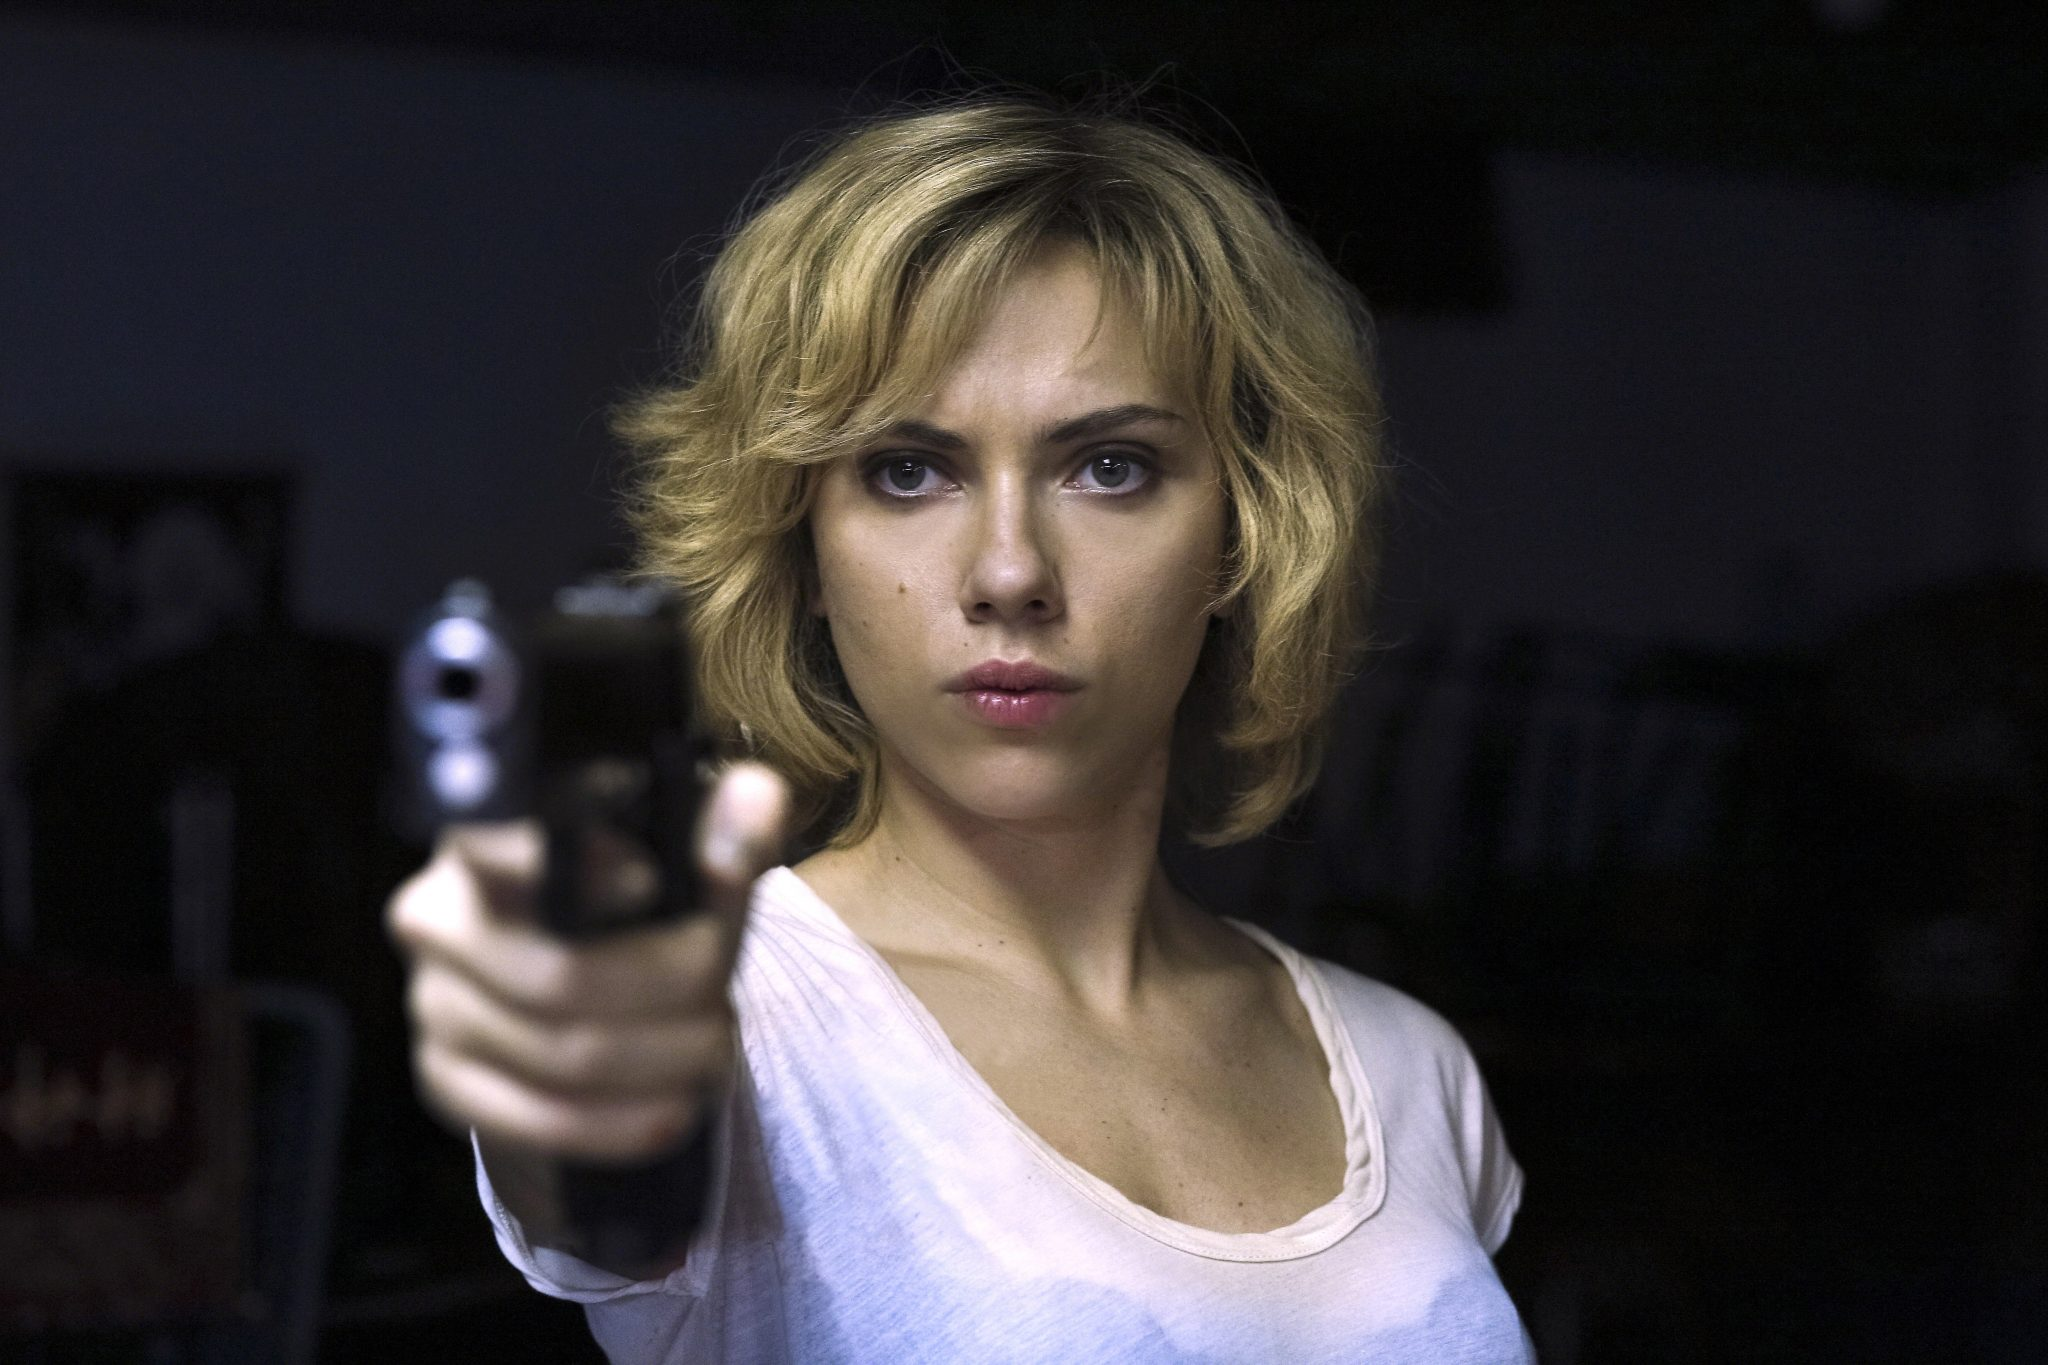 SCARLETT JOHANSSON Character(s): Lucy Film 'LUCY' (2014) Directed By LUC BESSON 08 August 2014 SAJ38503 Allstar Collection/EUROPACORP **WARNING** This Photograph is for editorial use only and is the copyright of EUROPACORP  and/or the Photographer assigned by the Film or Production Company & can only be reproduced by publications in conjunction with the promotion of the above Film. A Mandatory Credit To EUROPACORP is required. The Photographer should also be credited when known. No commercial use can be granted without written authority from the Film Company. 1111z@yx